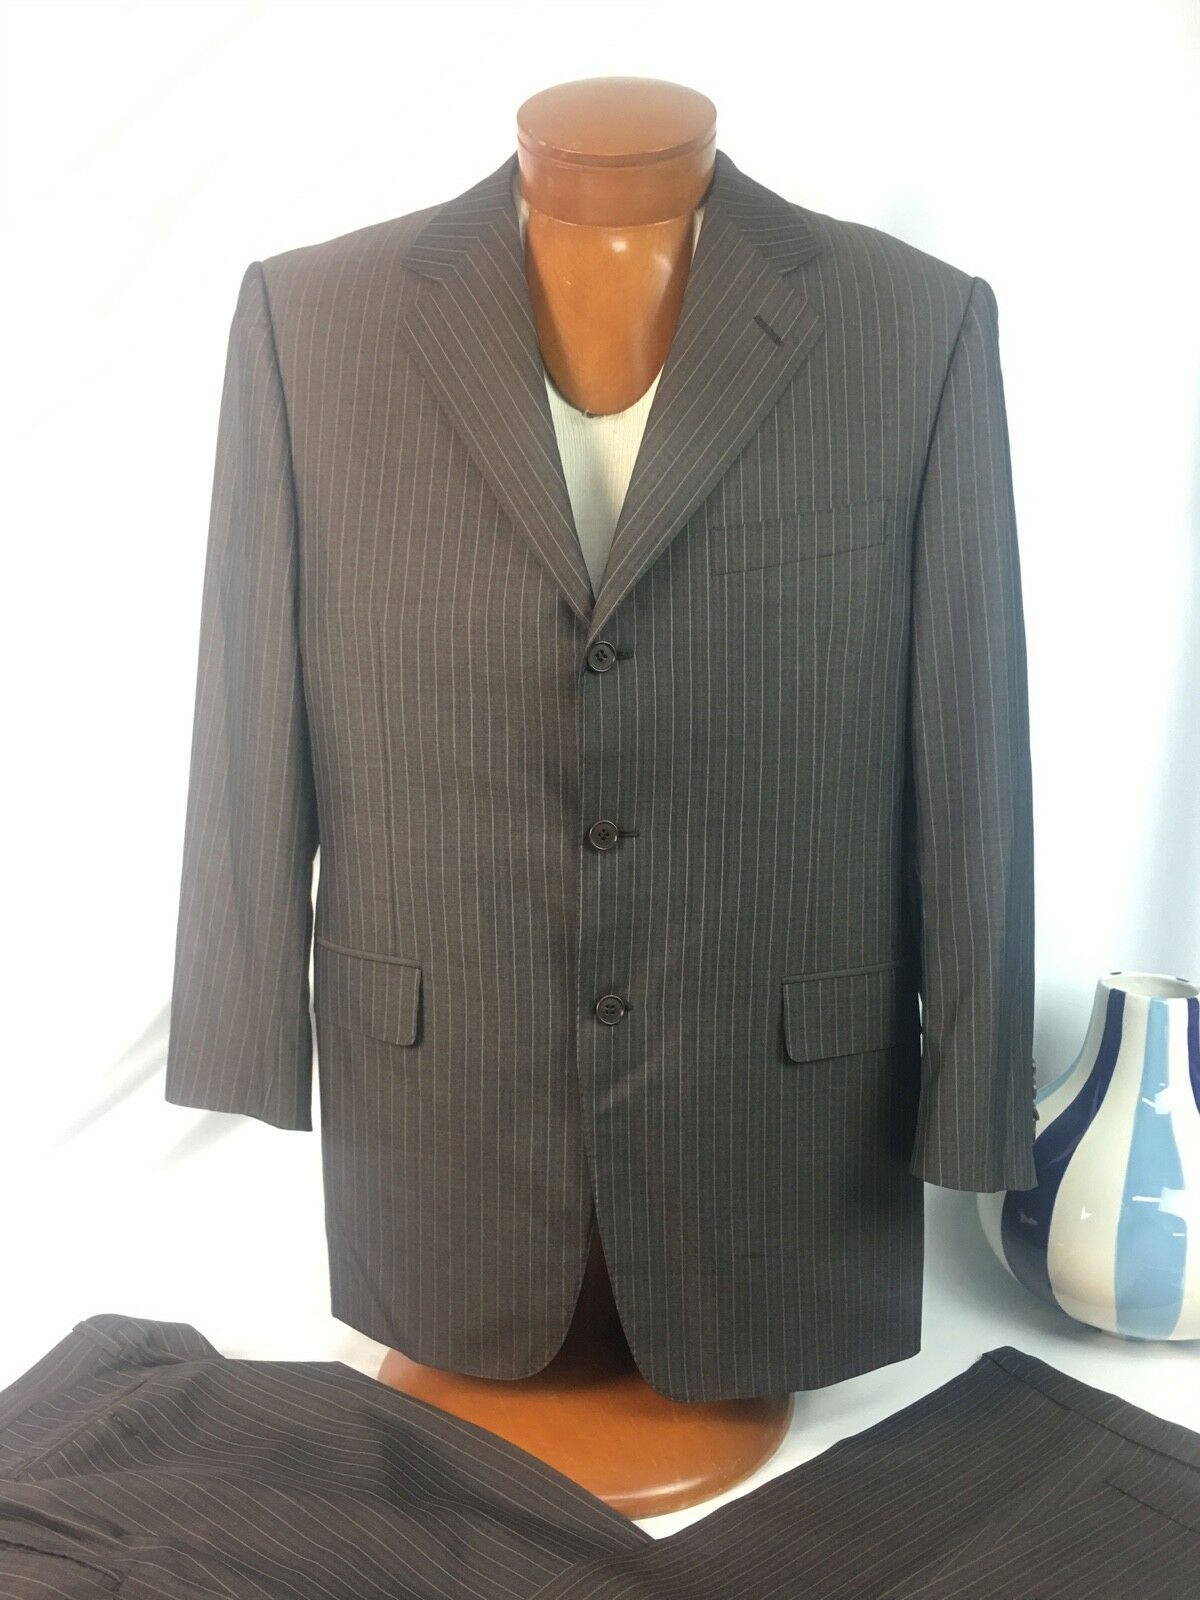 Canali  Stunning Brown Pinstripe Three Button Silk Wool 2 Pc. Suit 40R